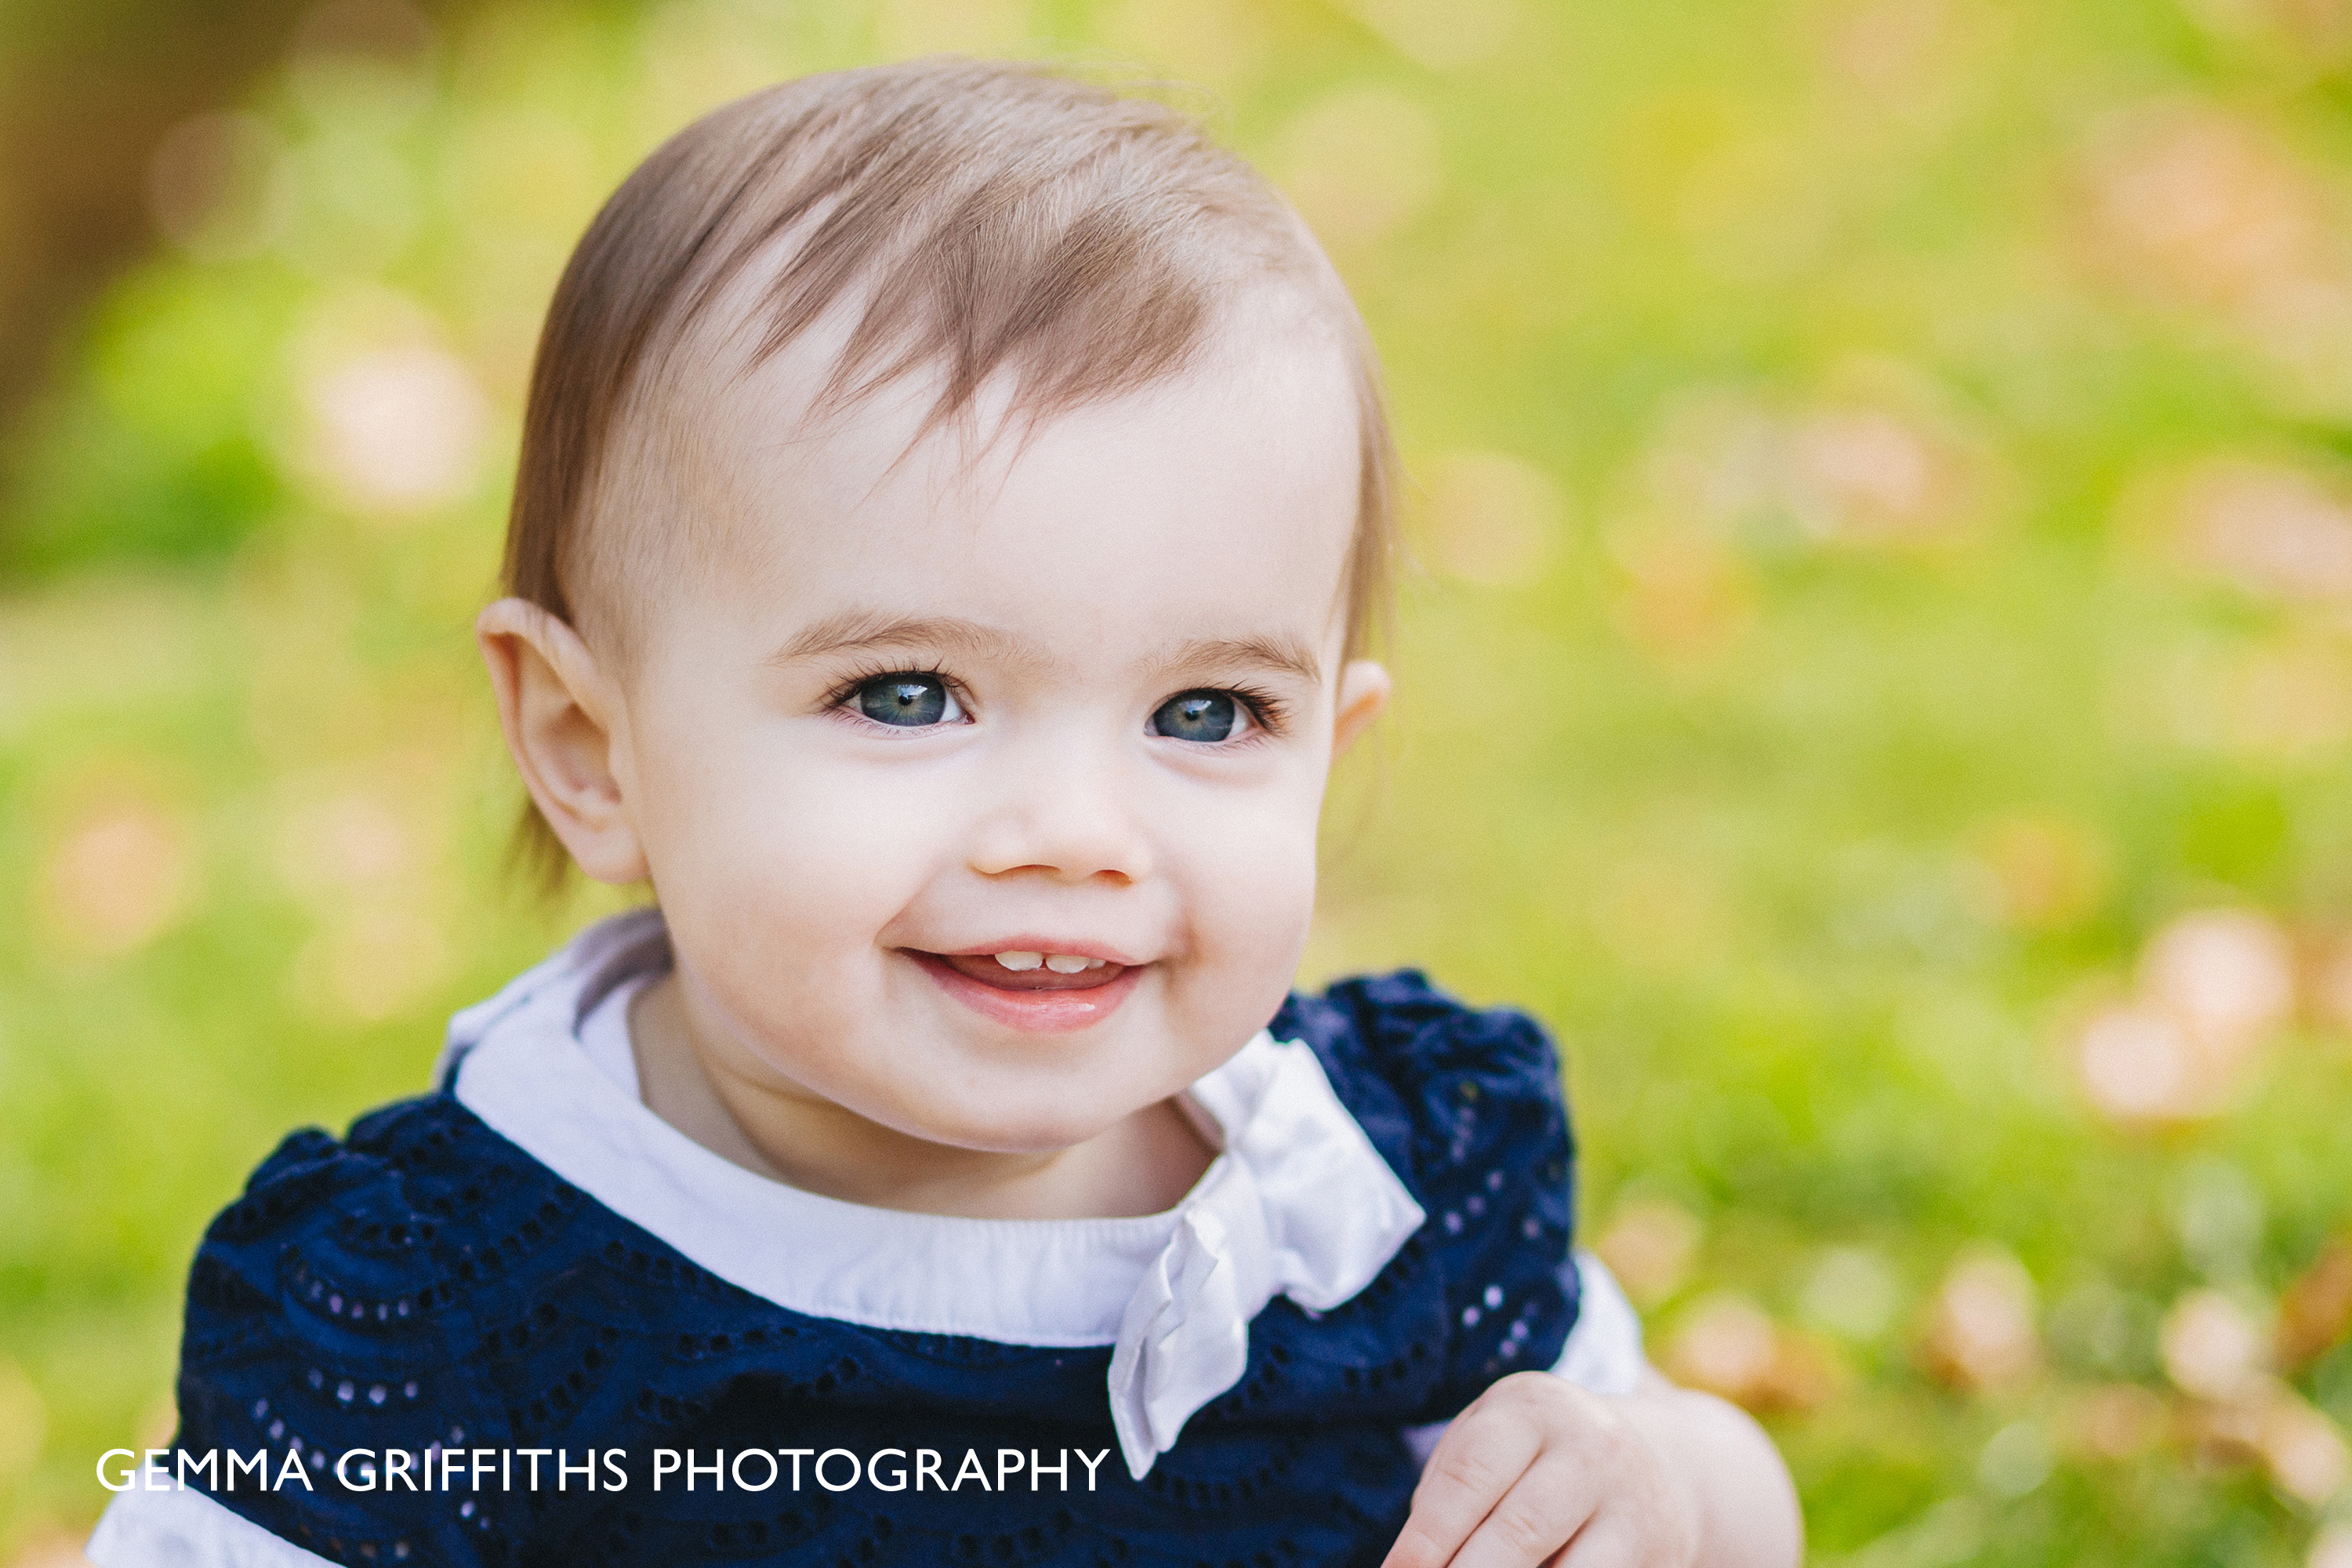 Portrait of a smiling baby